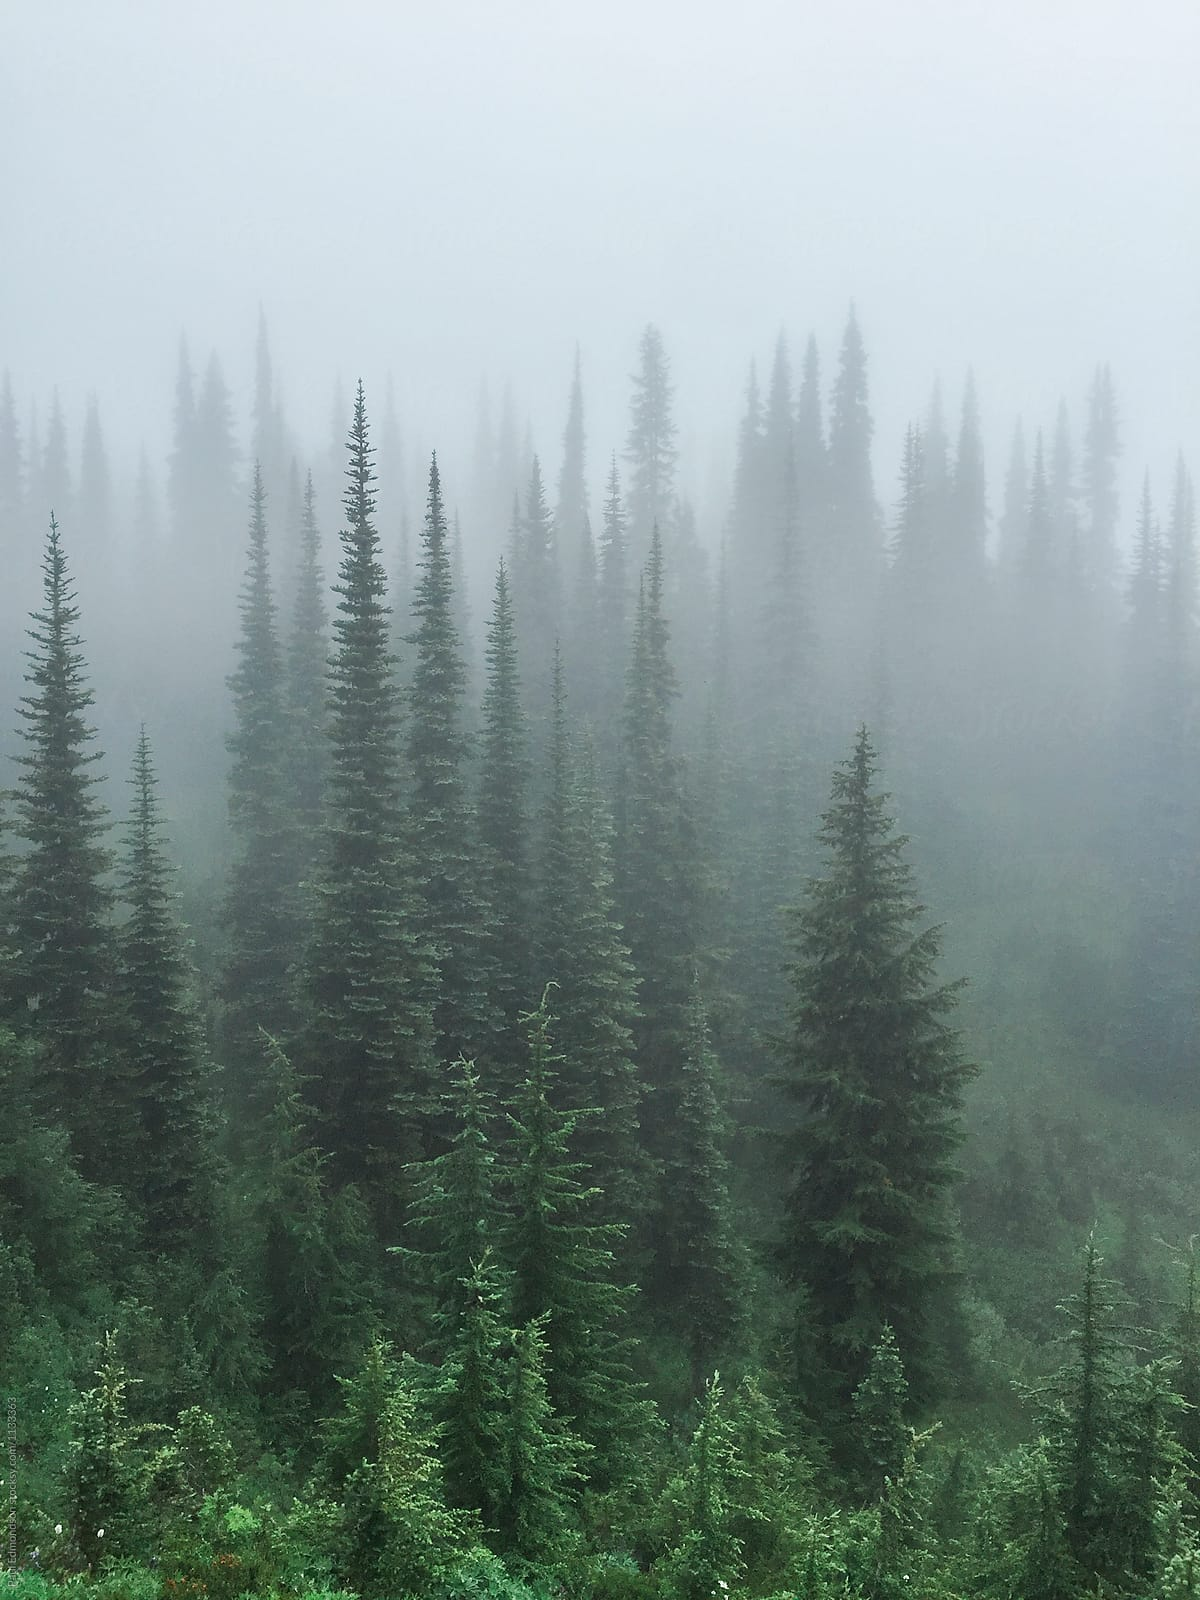 Alpine Evergreen Trees And Forest In Dense Fog North